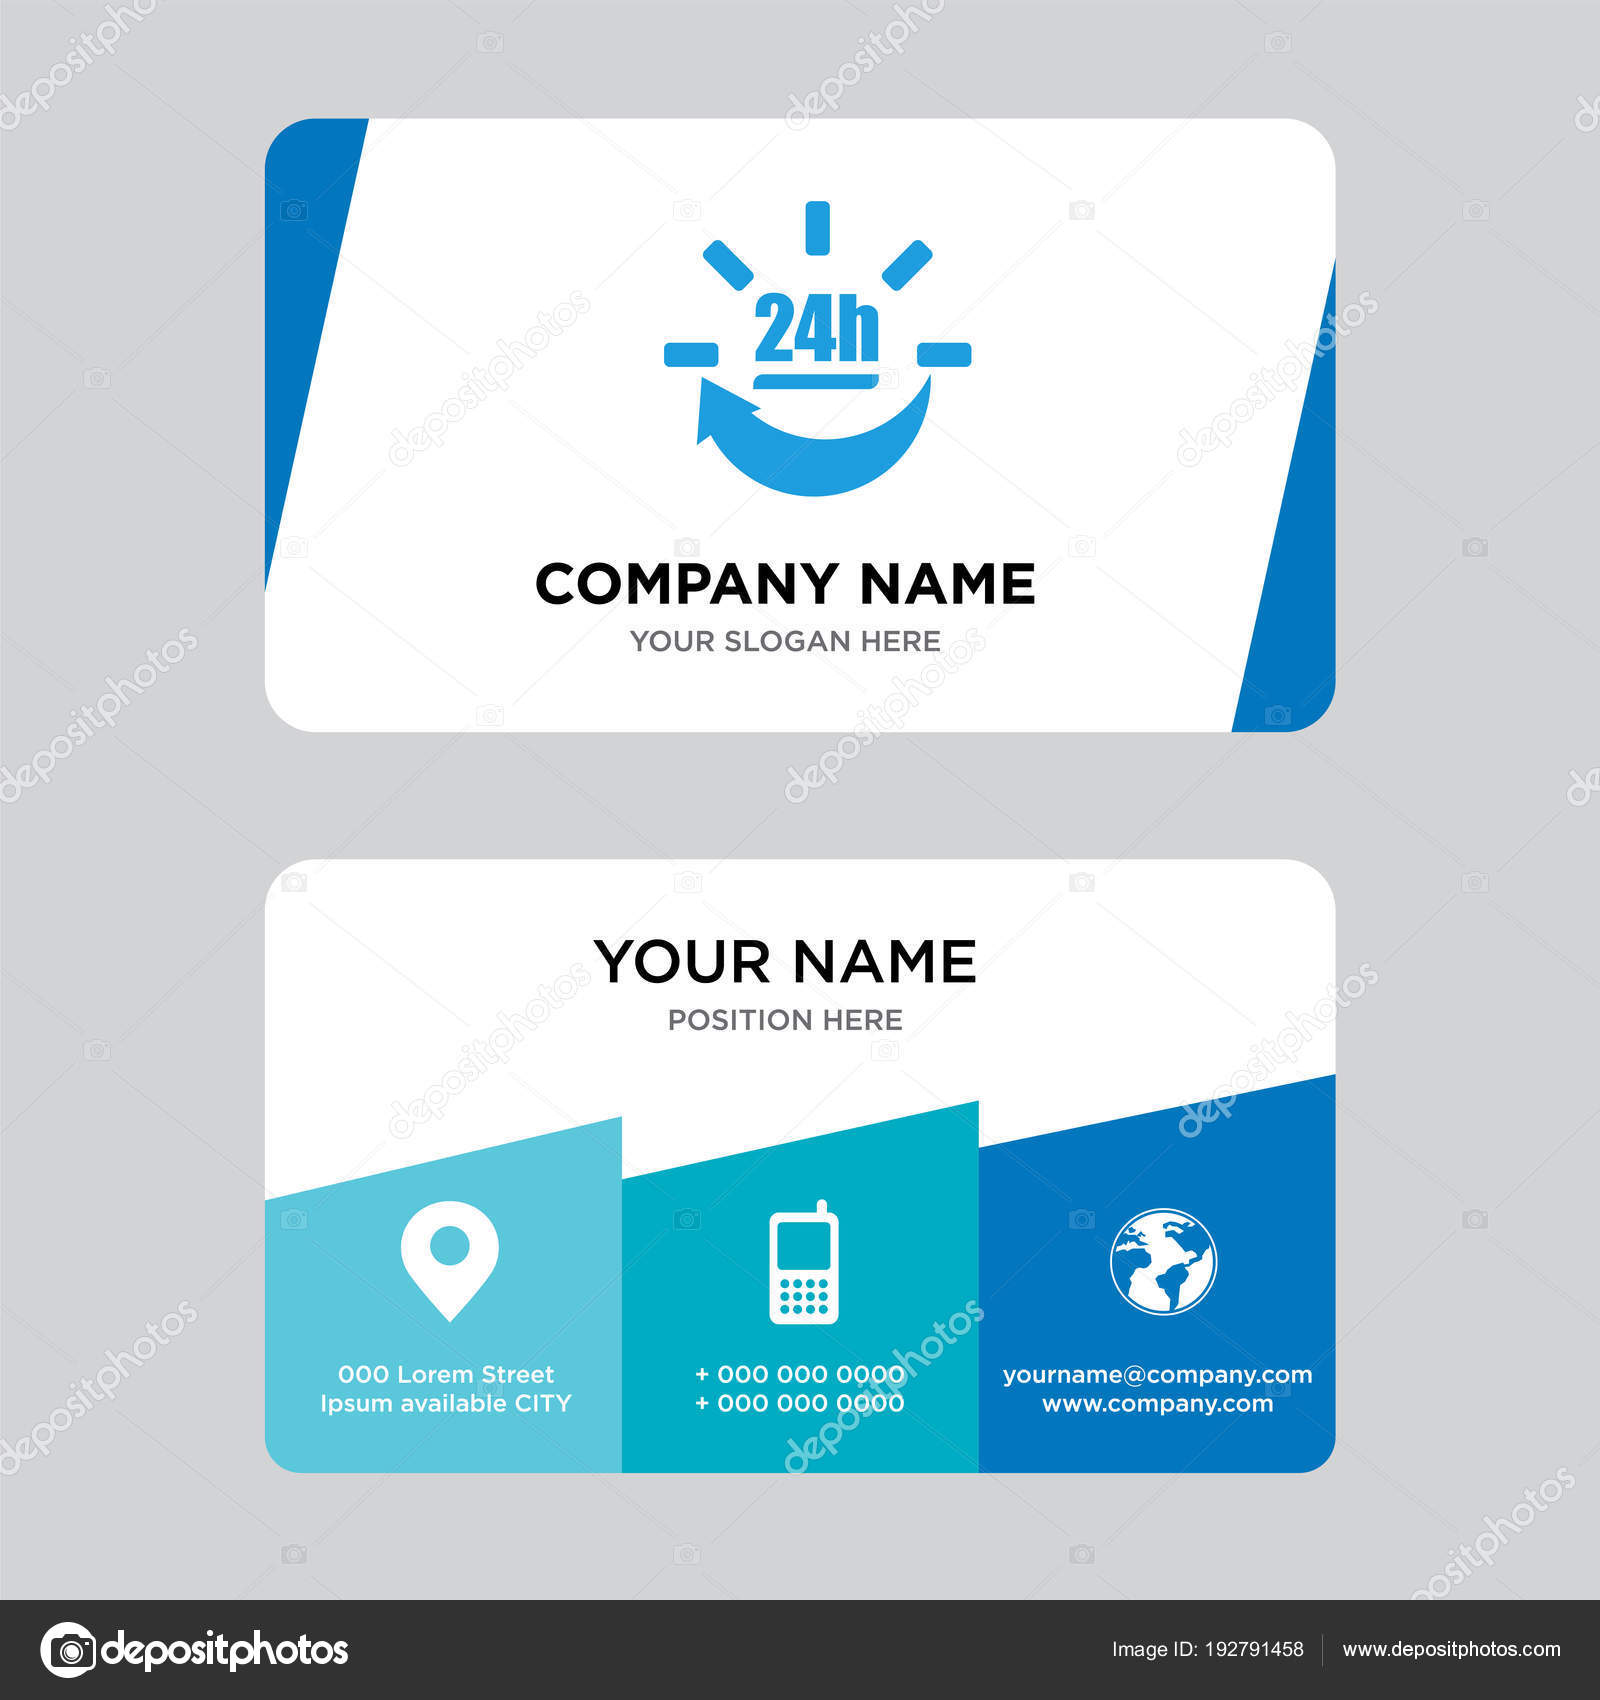 24 hours delivery business card design template — Stock Vector ...